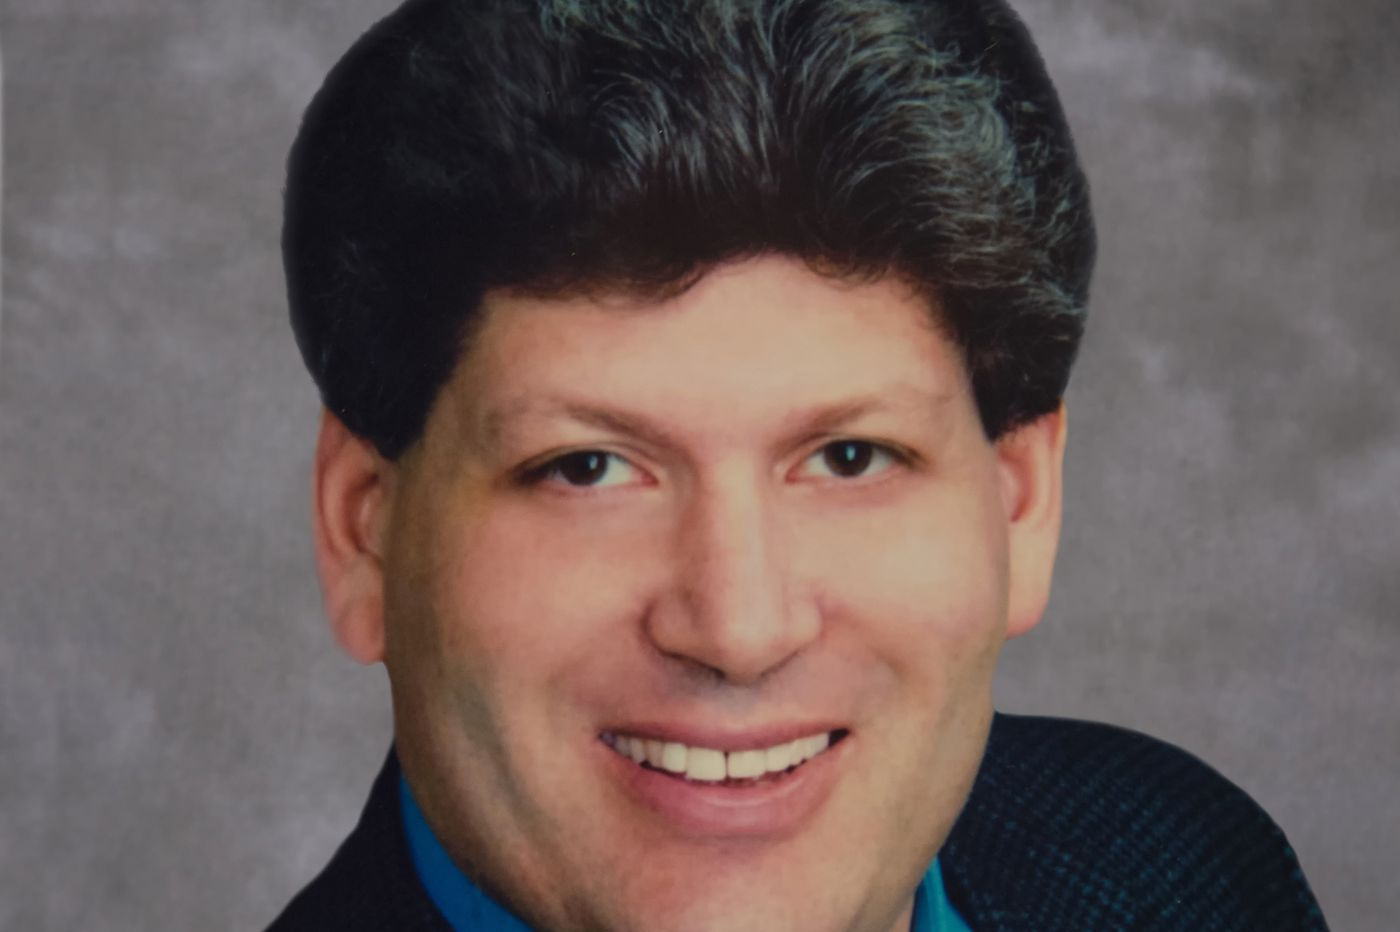 Ronald P. Feldman, 57, CPA and Upper Dublin Township commissioner